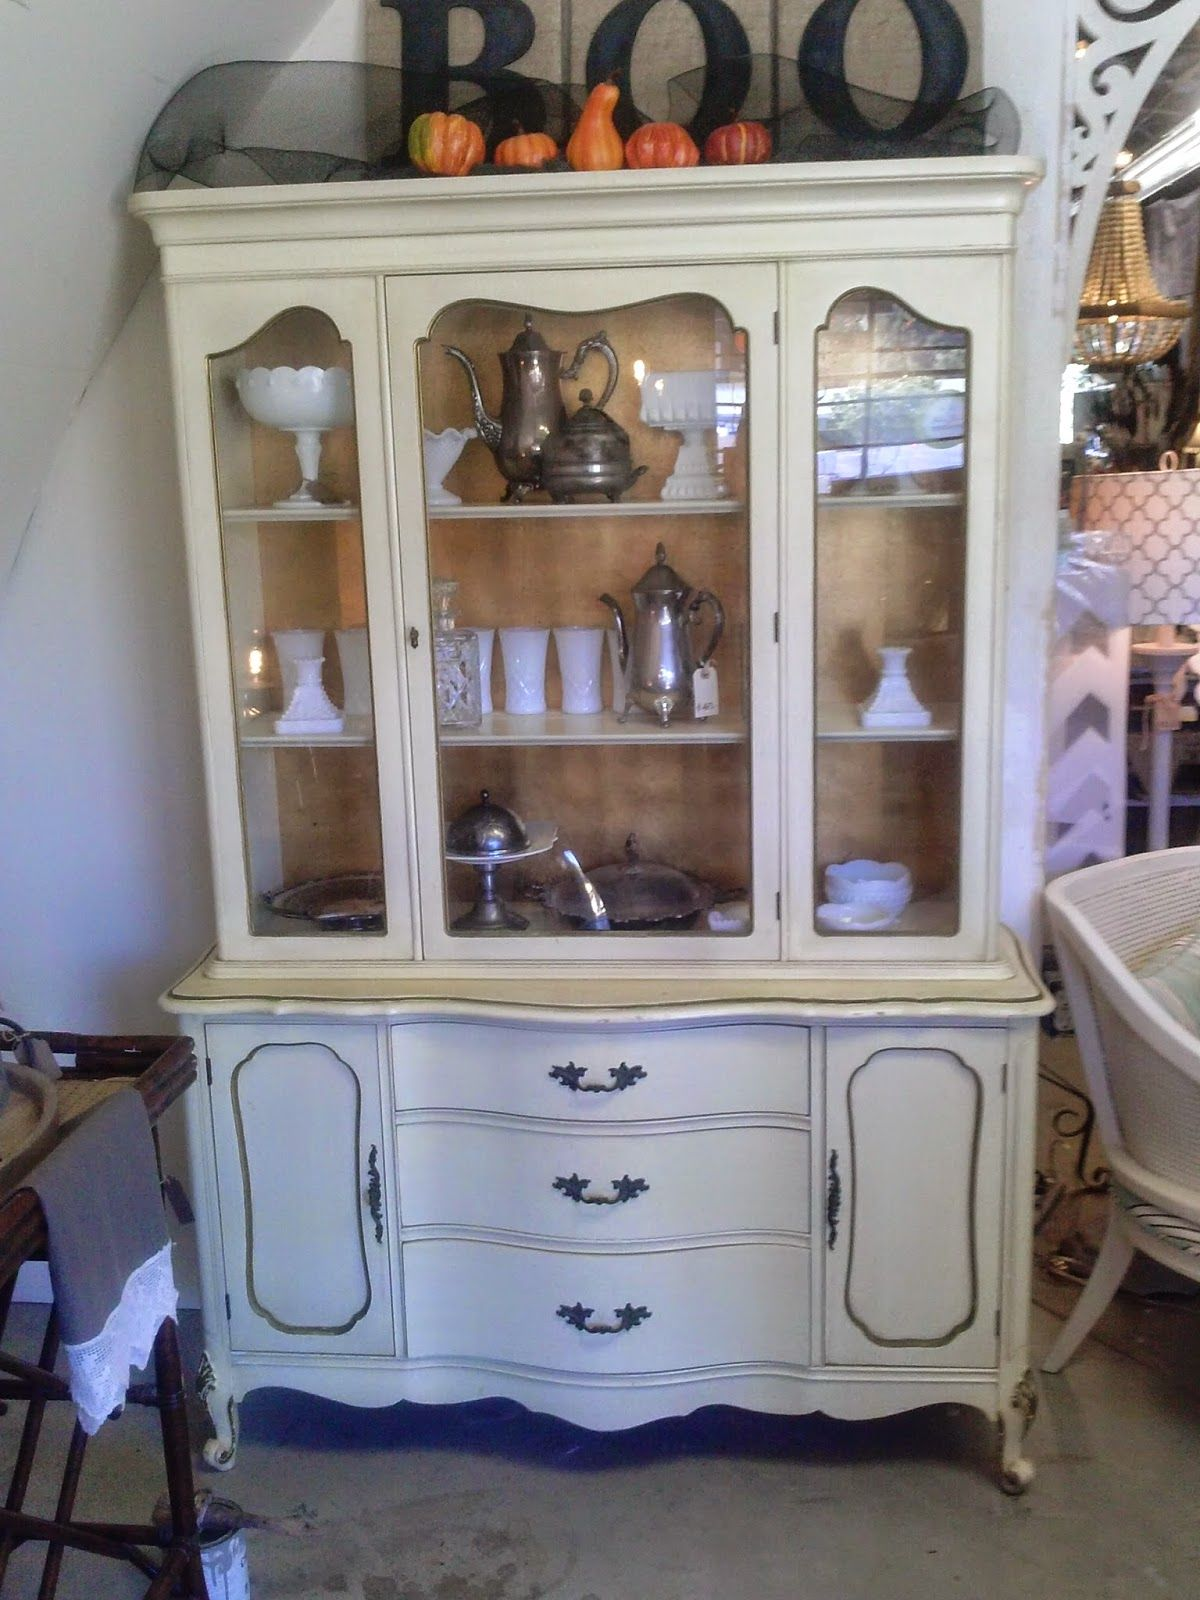 I recently came across this french provincial hutch at a yard sale